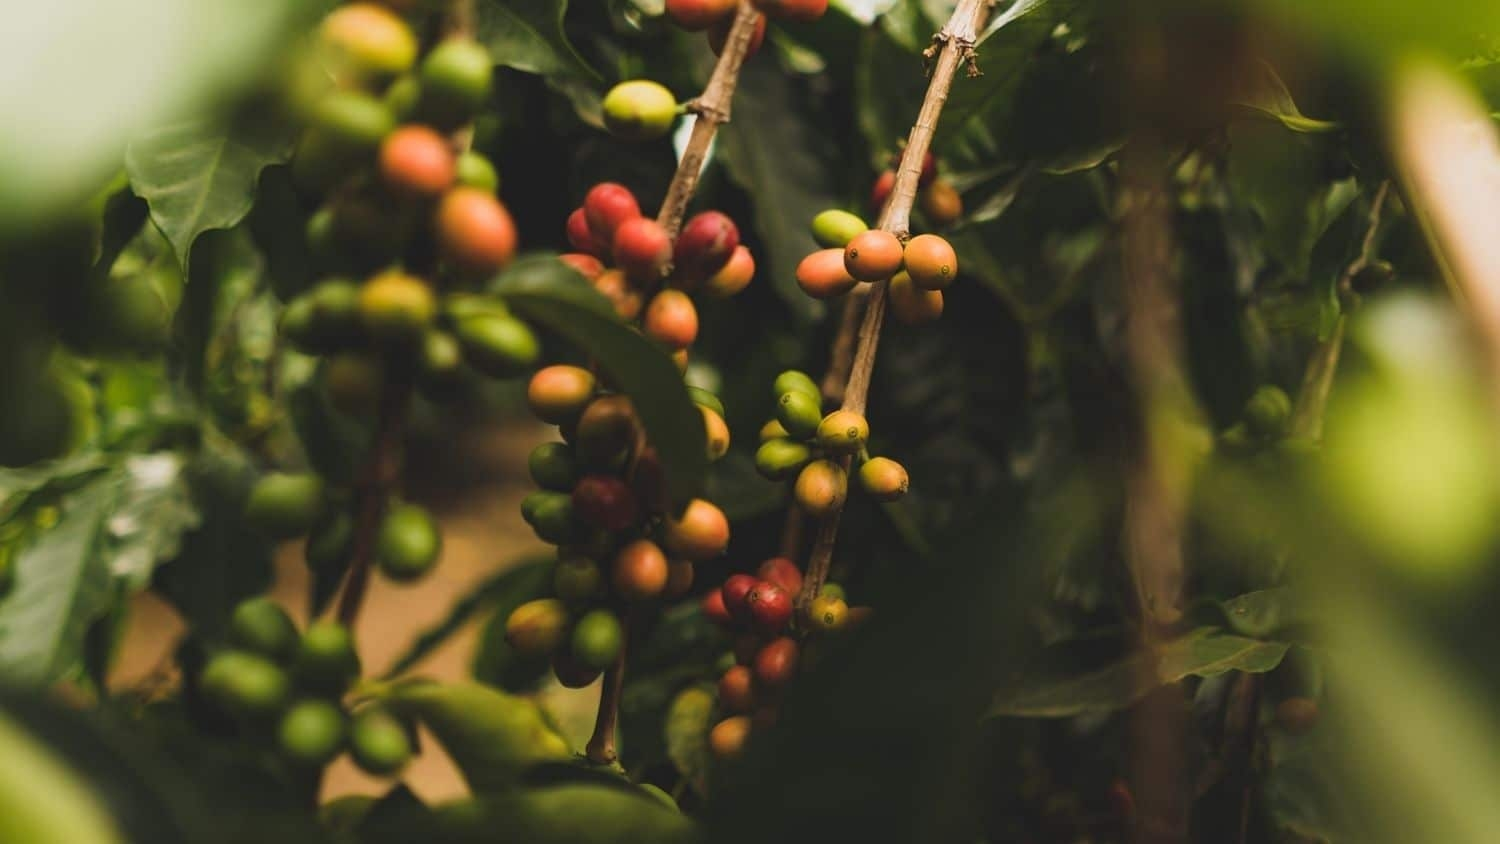 Coffee tree - Many Nonprofits, Companies Report Using Commercial Species in Tree Planting Projects - Forestry and Environmental Resources Department at NCState